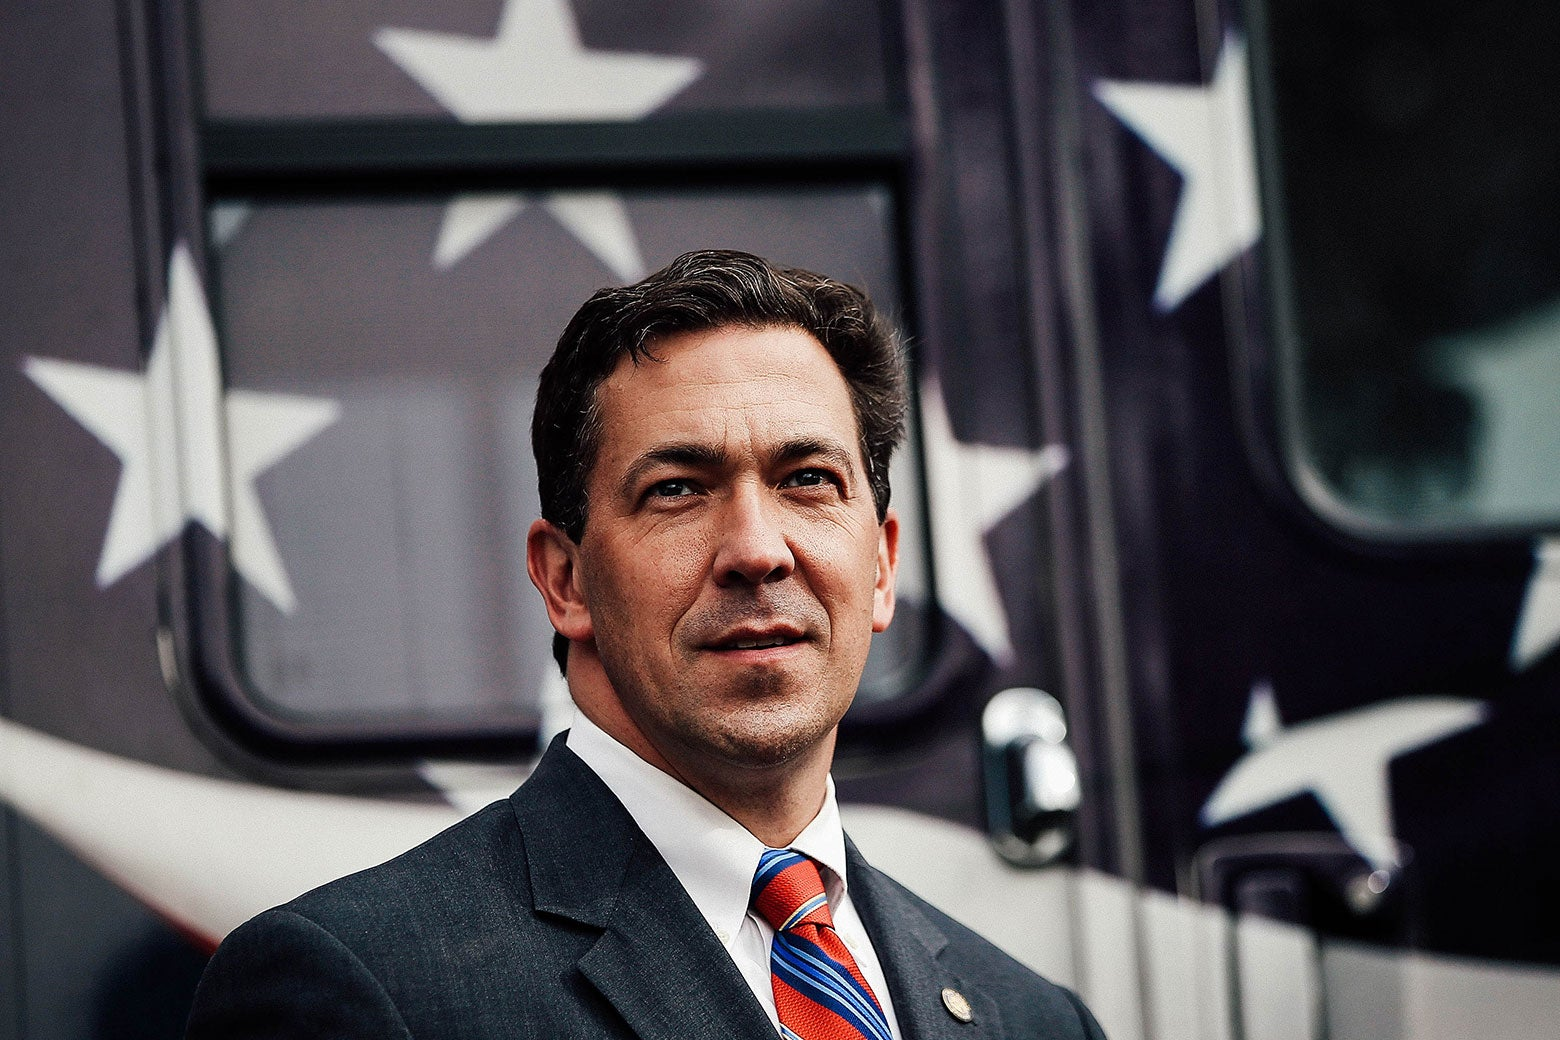 Mississippi state Sen. Chris McDaniel looks on during a campaign rally on June 23, 2014, in Flowood, Mississippi.